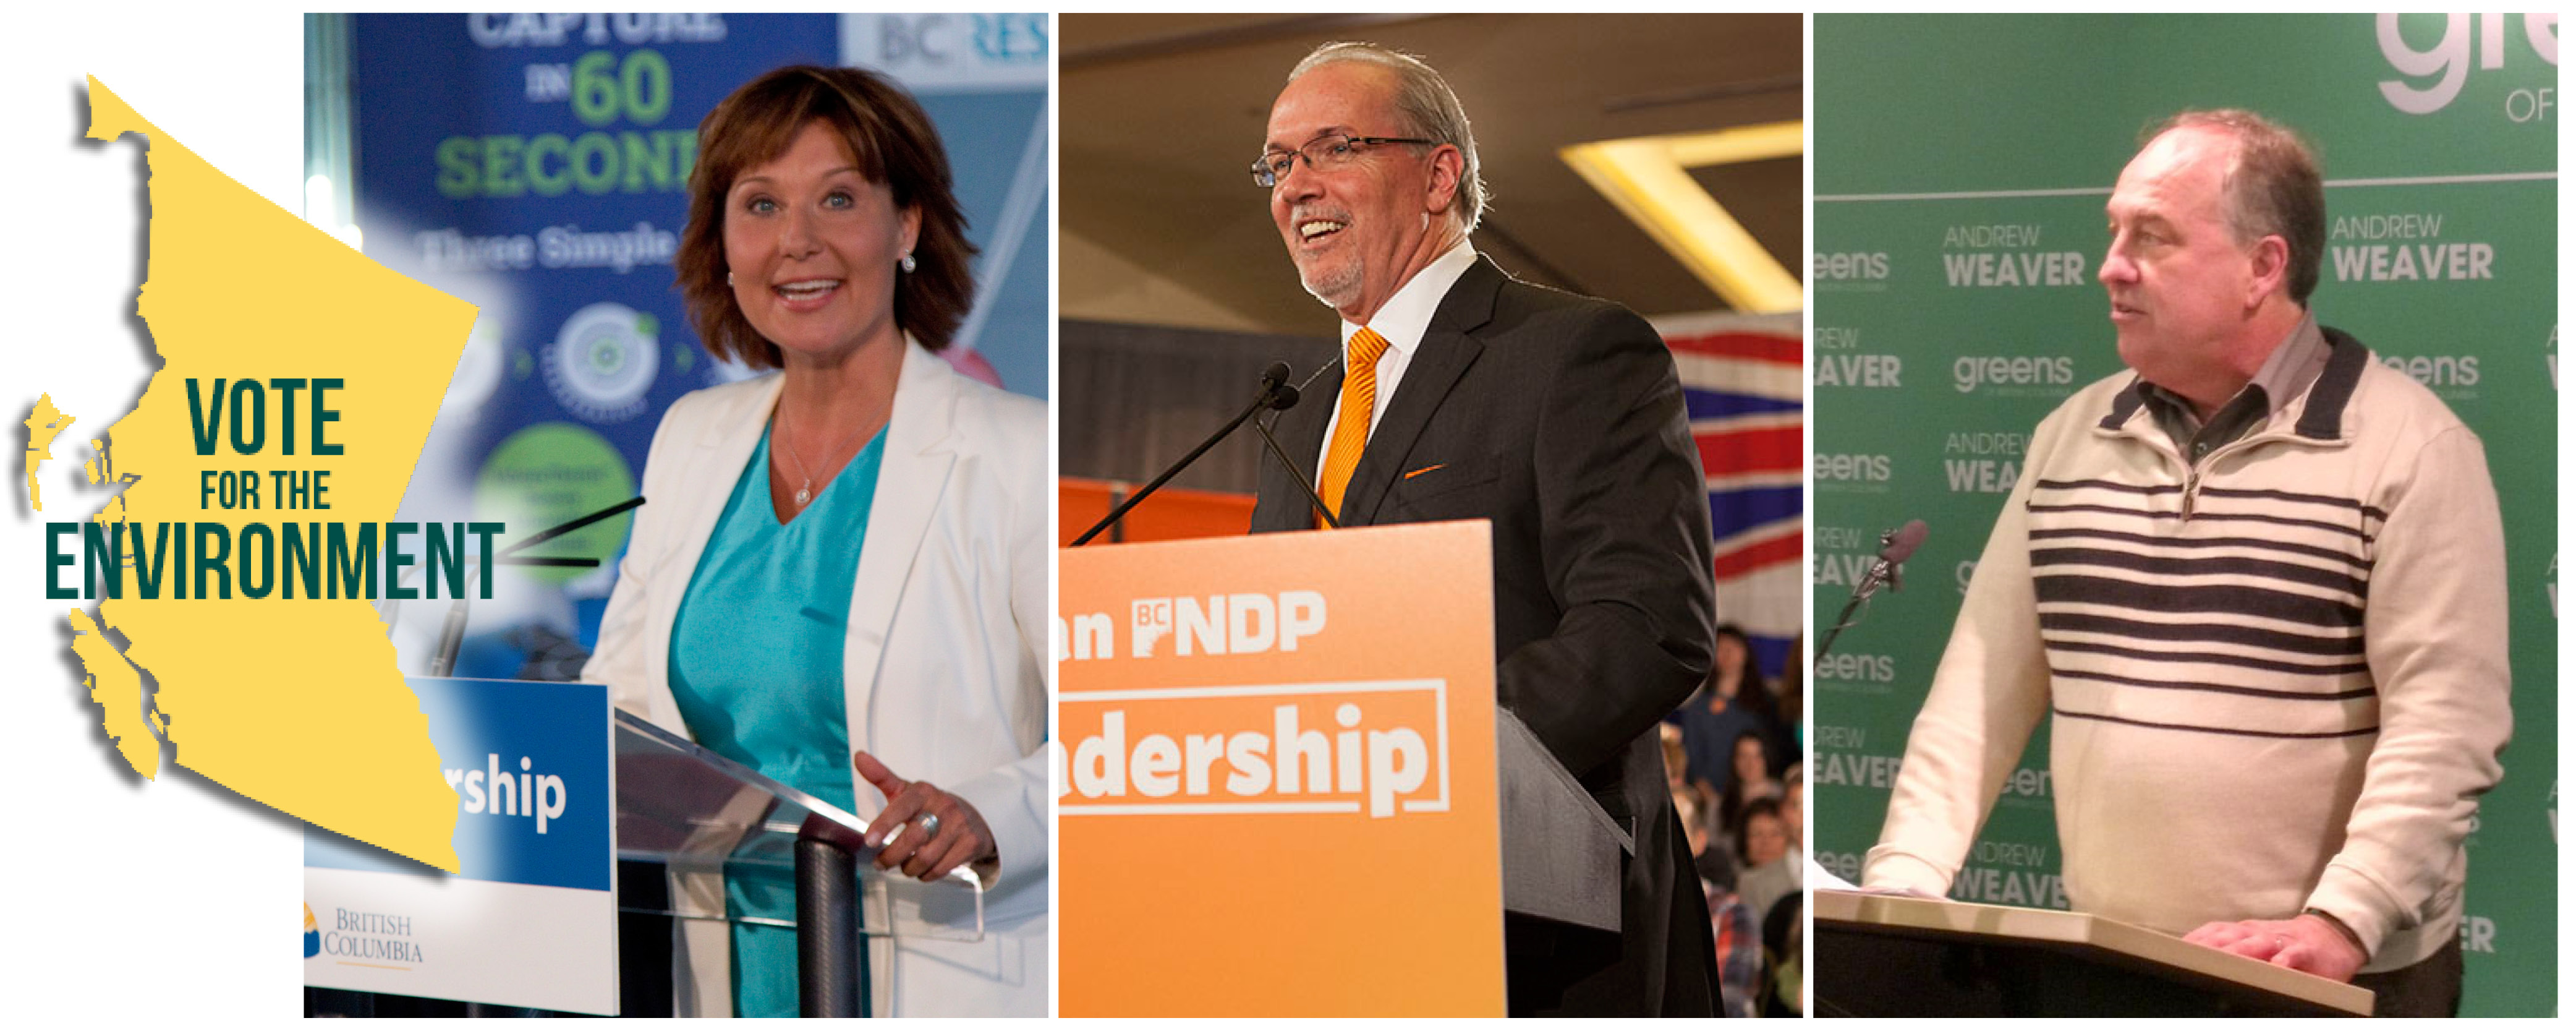 Profiles of party leaders: John Horgan (BC NDP), Andrew Weaver (BC Green), and Christy Clark (BC Liberal)